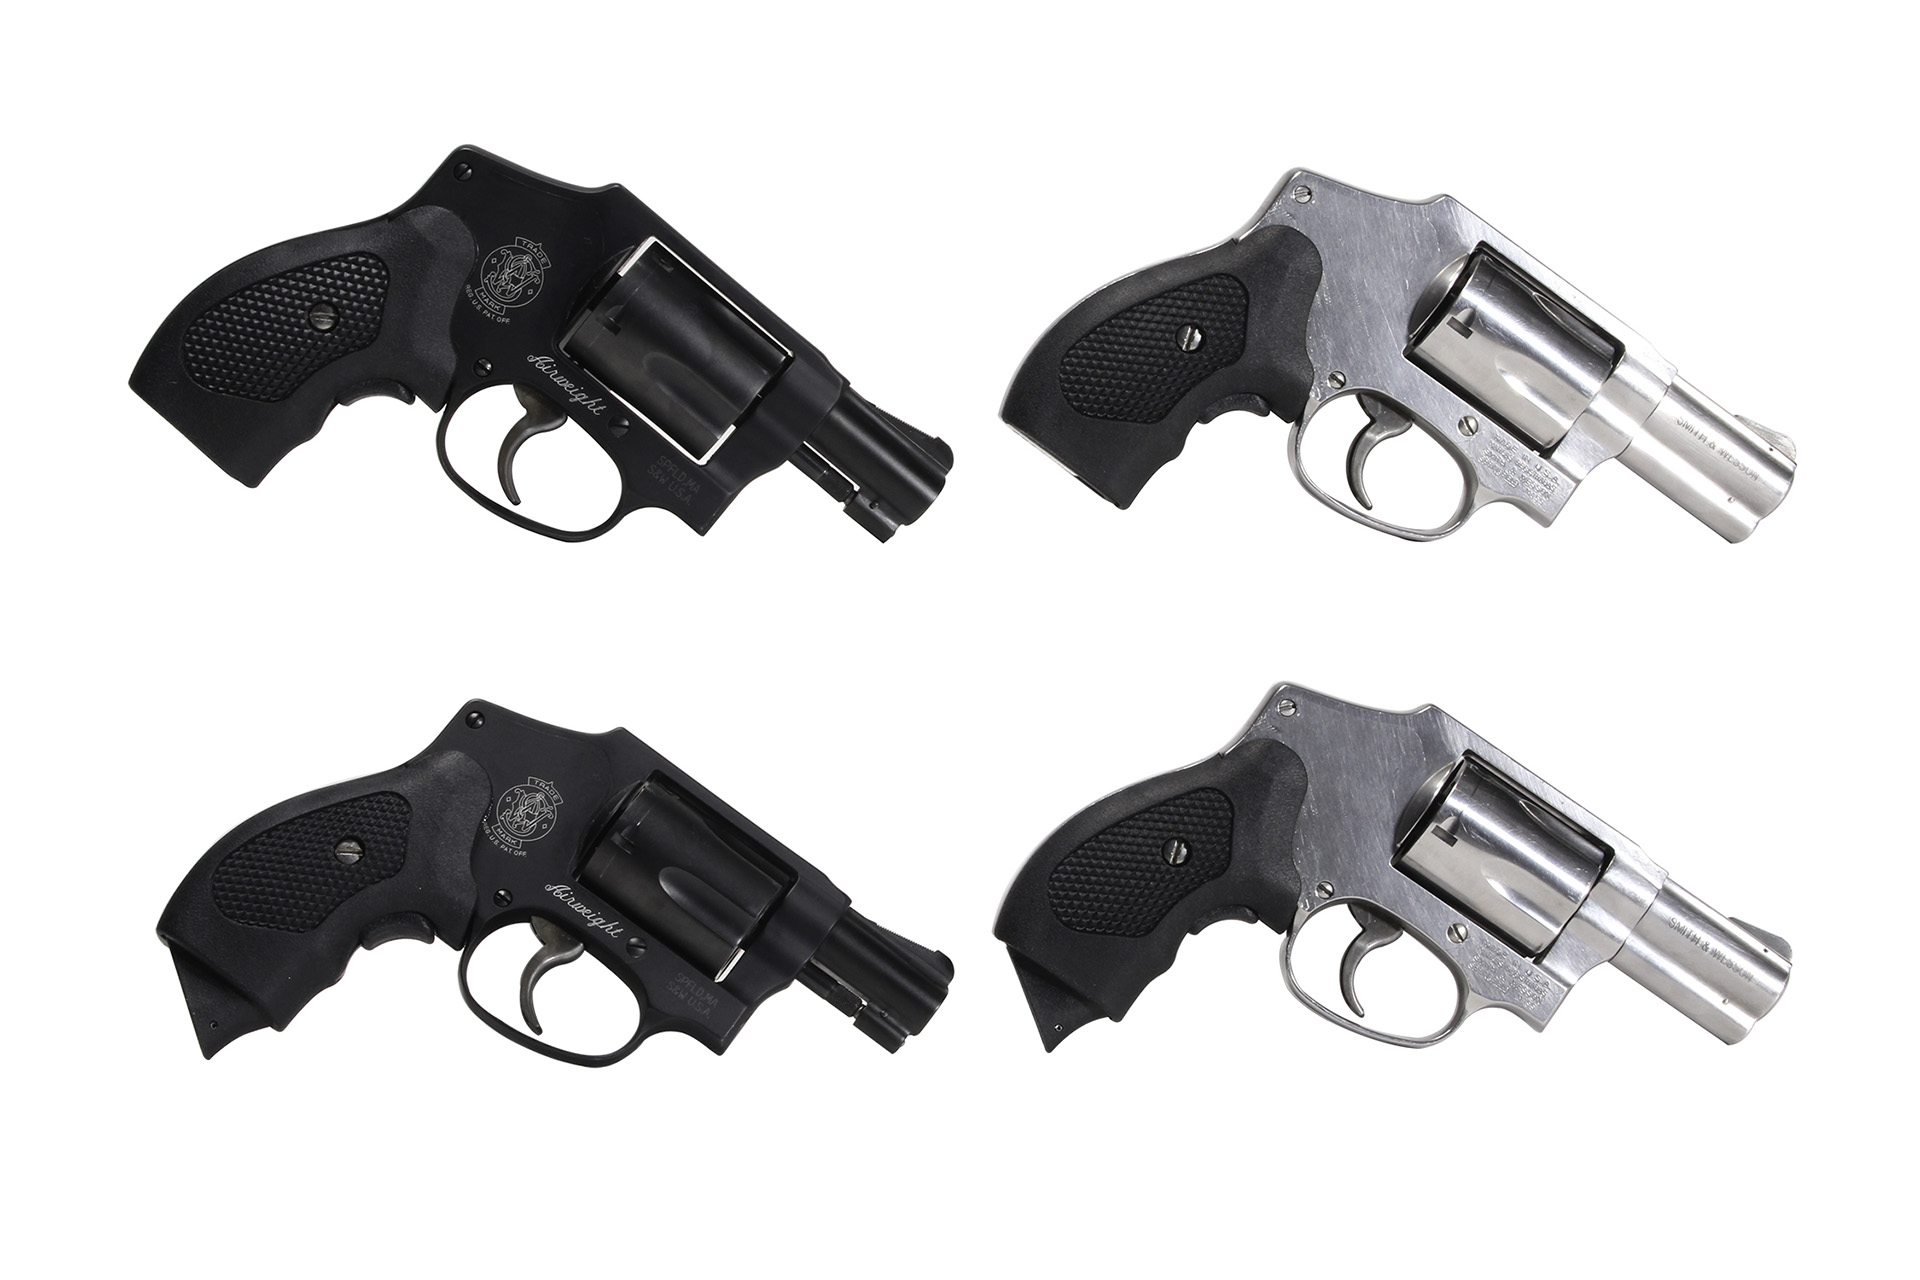 J-Frame S&W Pistols with New Guardian Grip